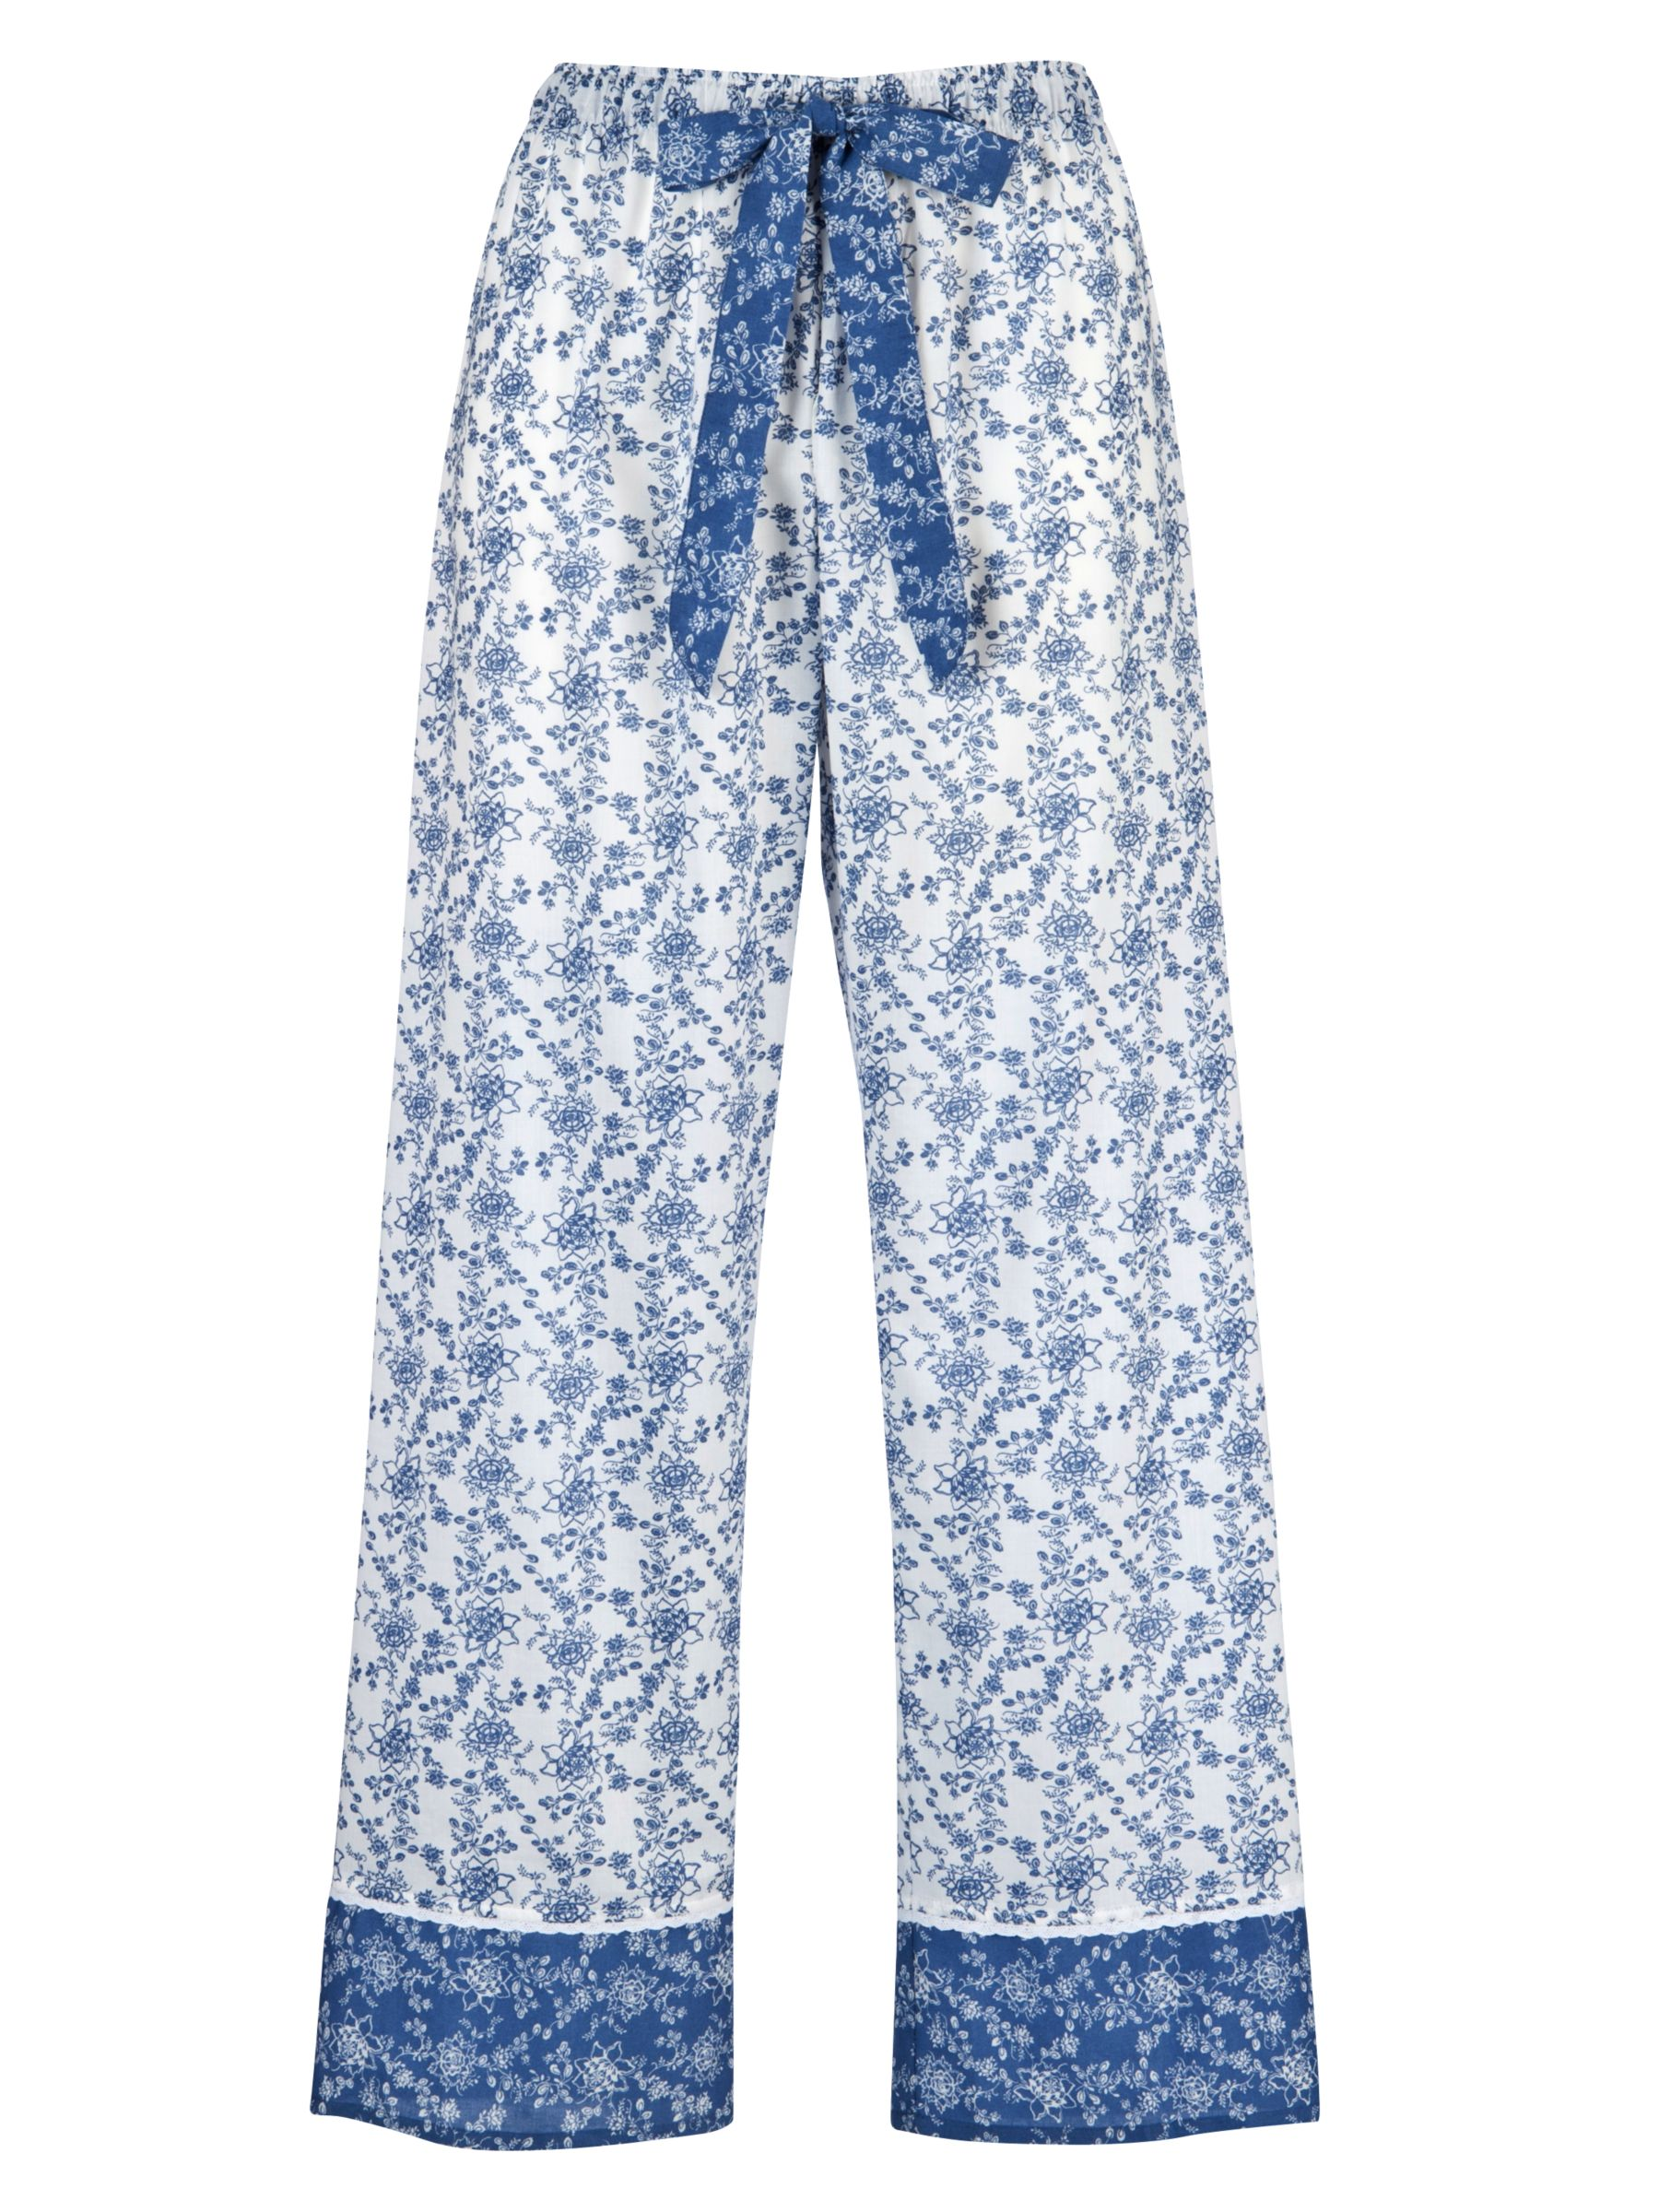 Cyberjammies China Blue Pyjama Bottoms, Blue/White